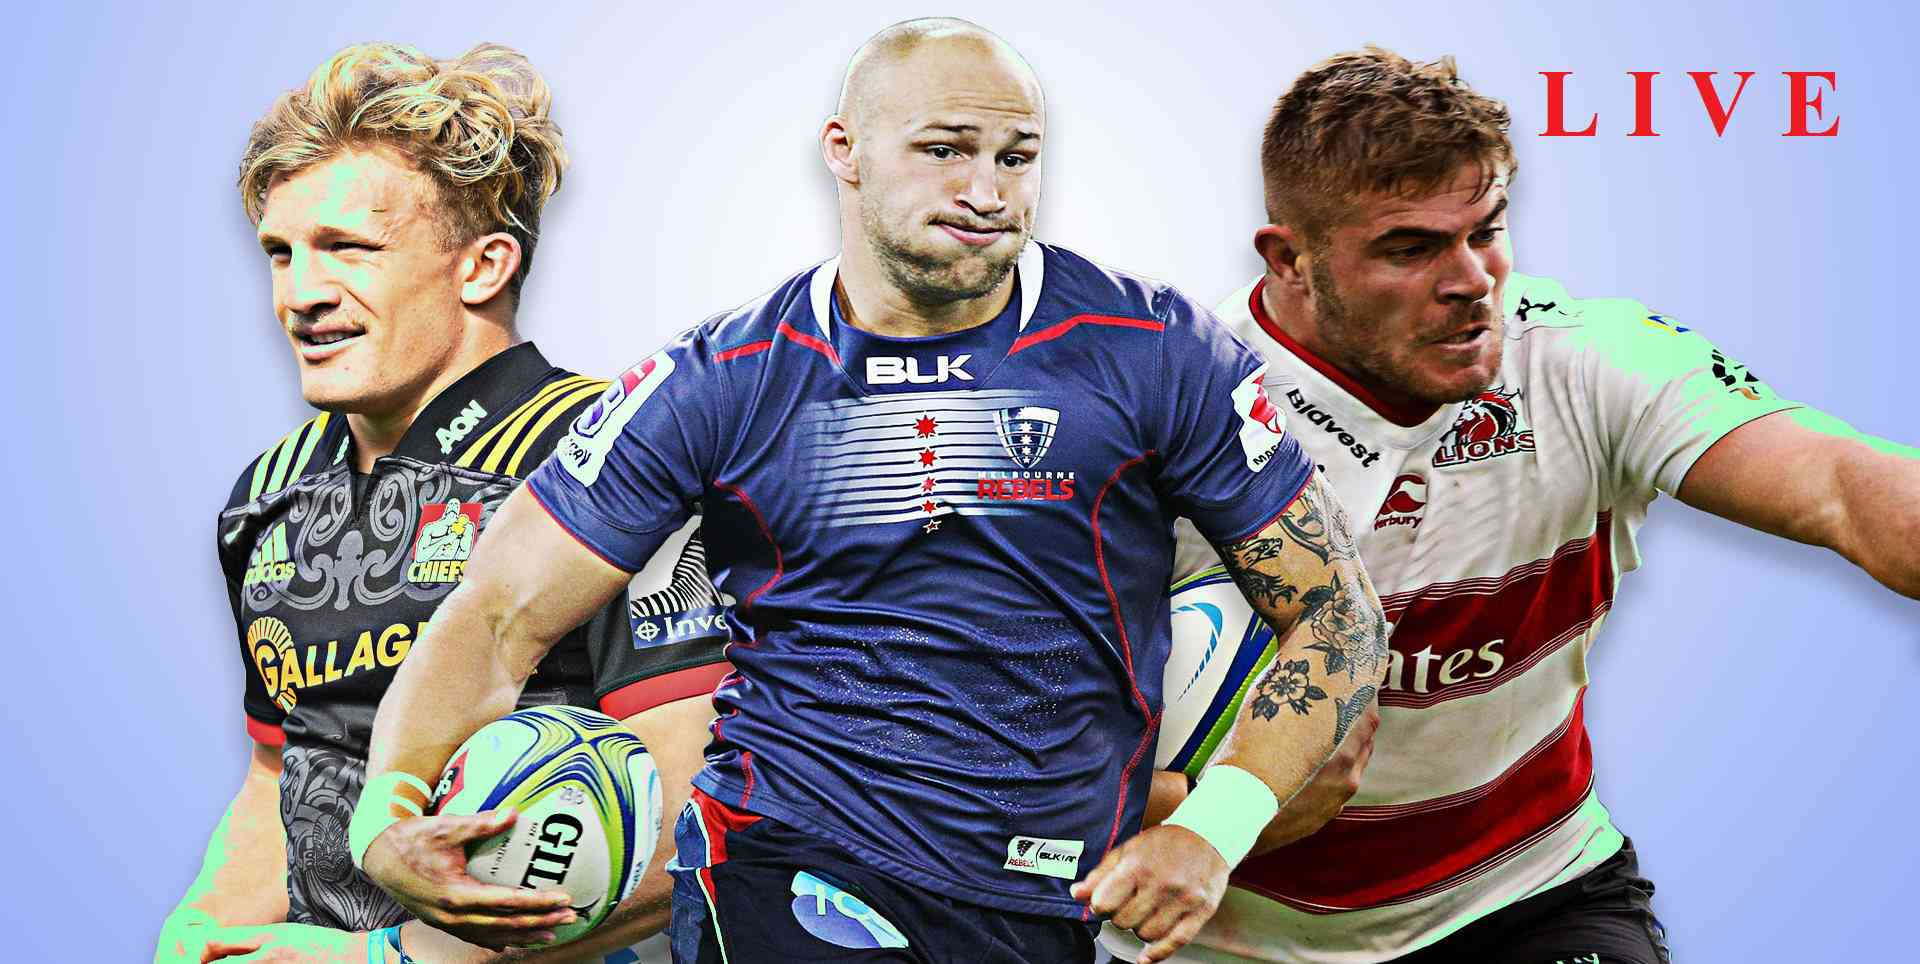 toulon-vs-scarlets-streaming-live